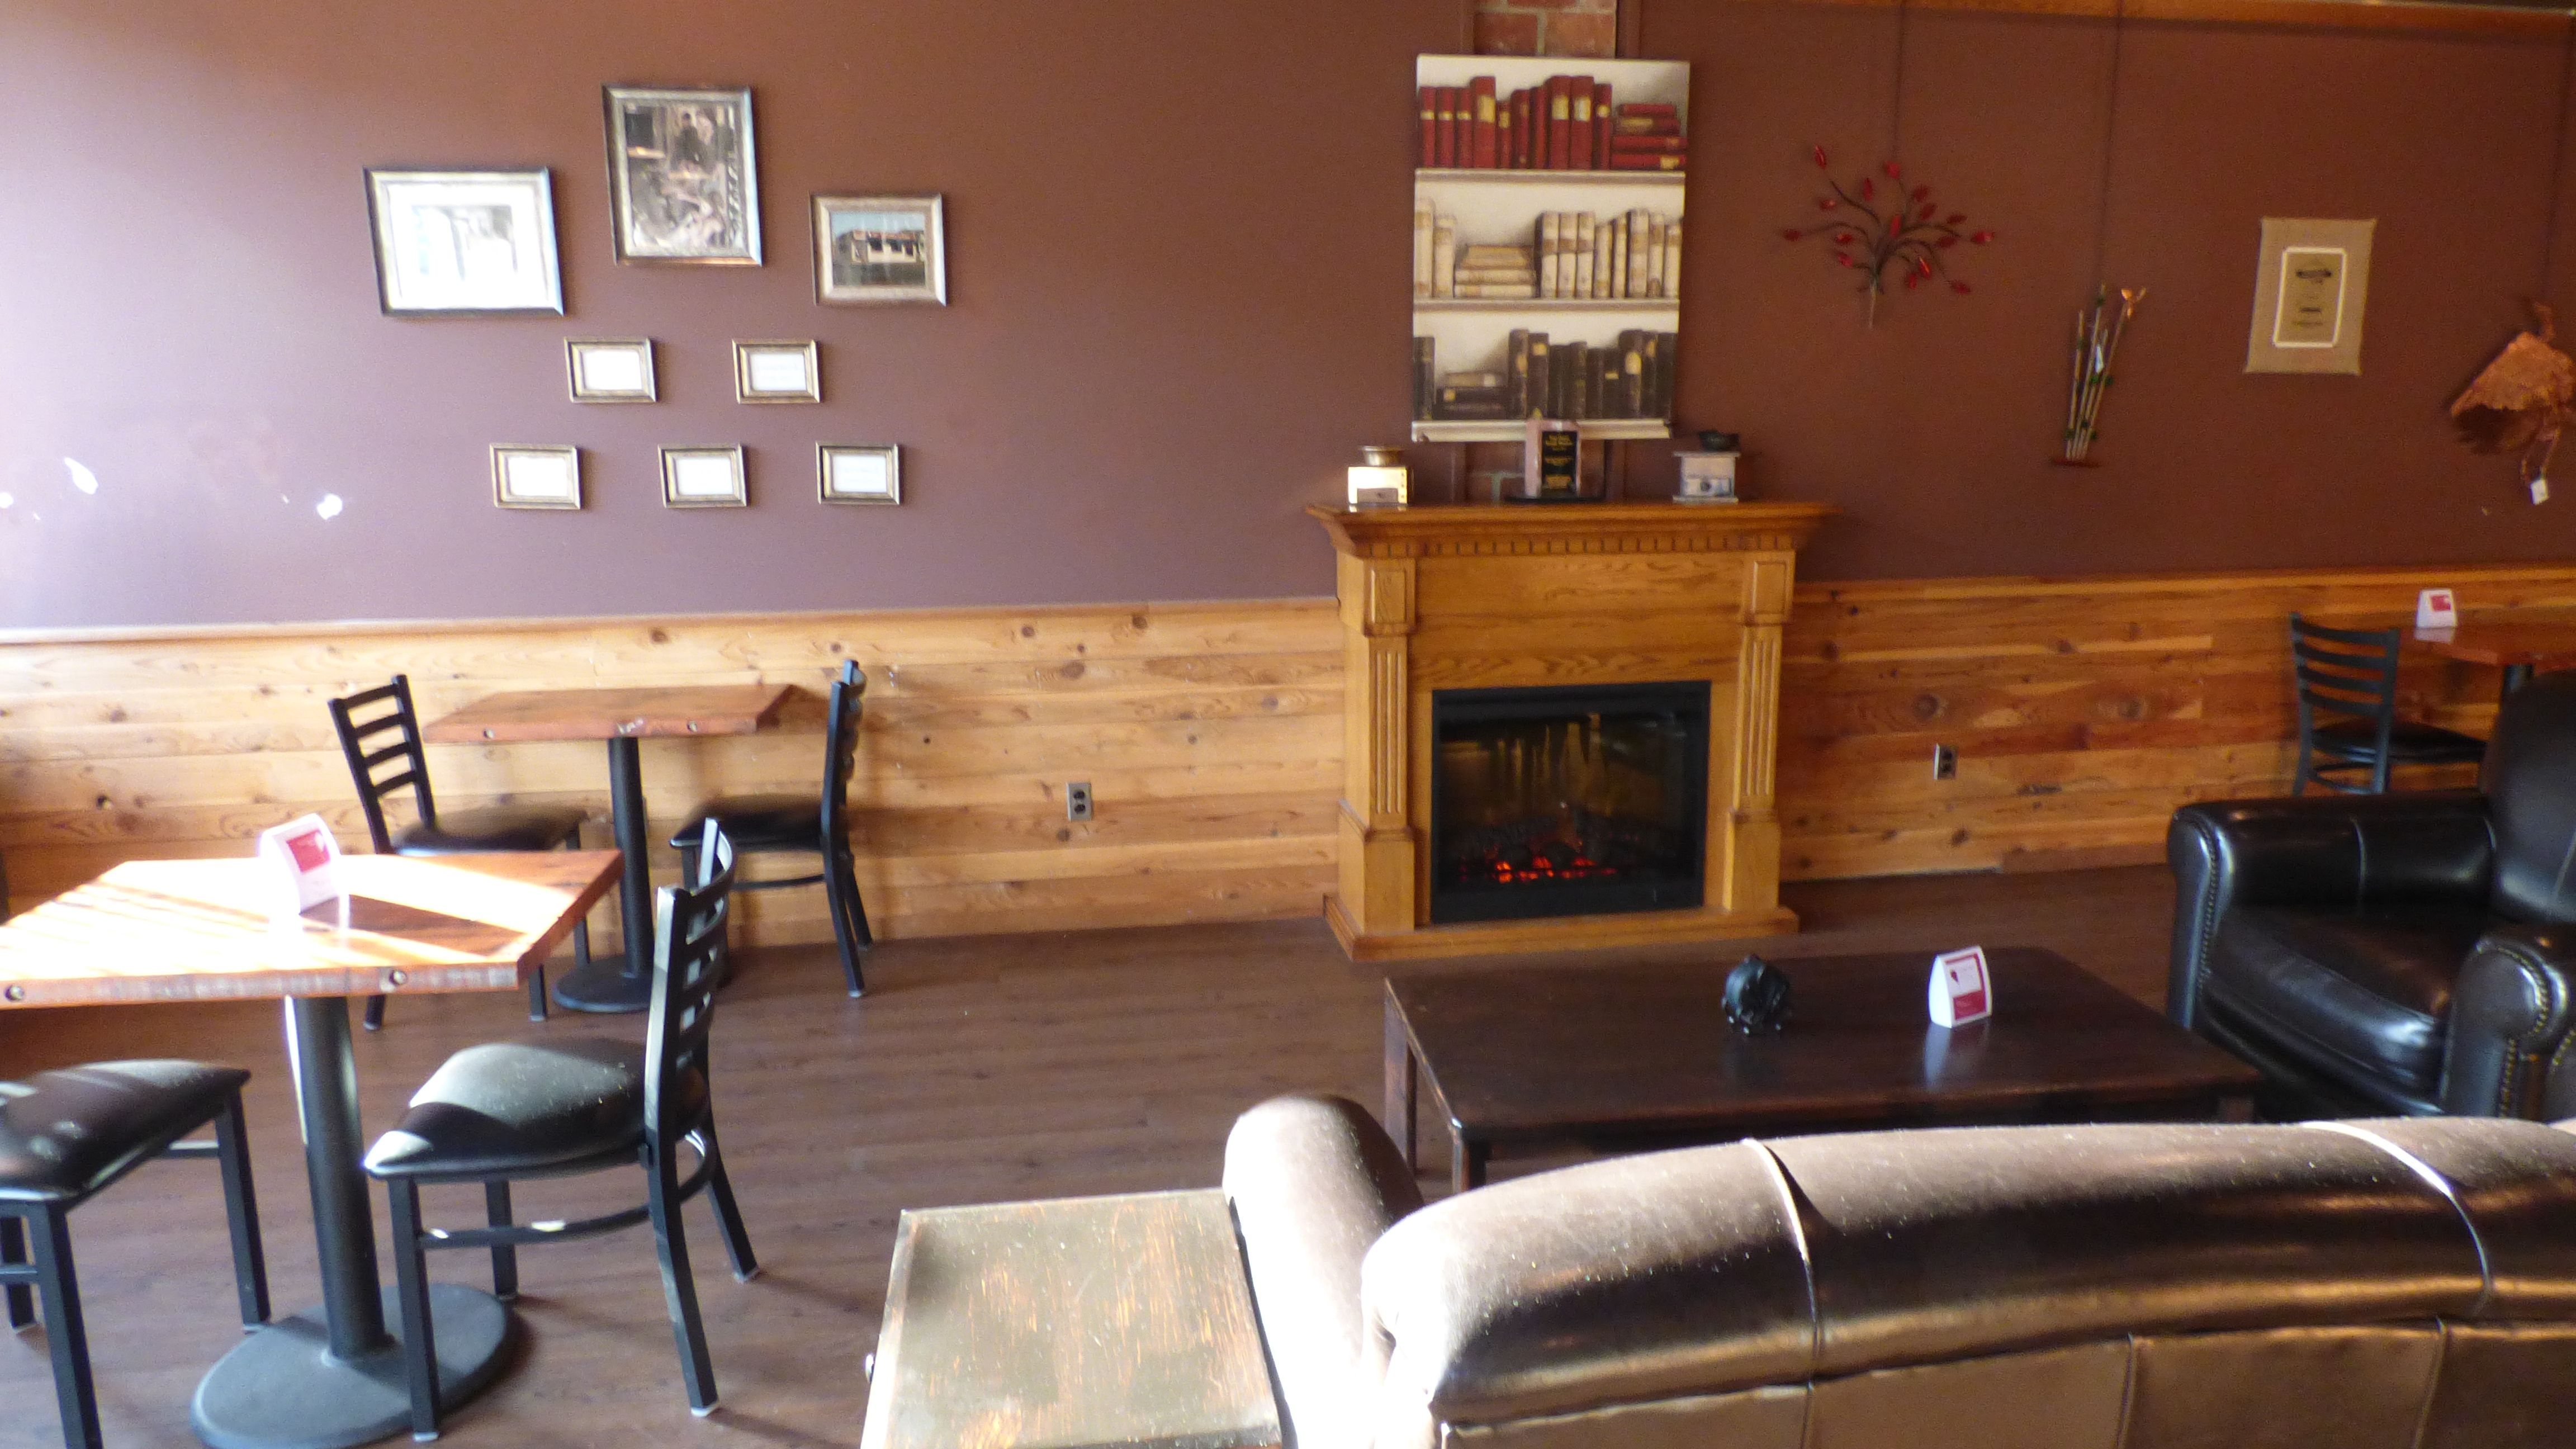 The Coffee Oasis Bremerton Cozy Fireplace And Seating Kitsap Charity Kitsapcares Bremerton Poulsbo Port Orchard Coffee Shop Business Home Cozy Fireplace